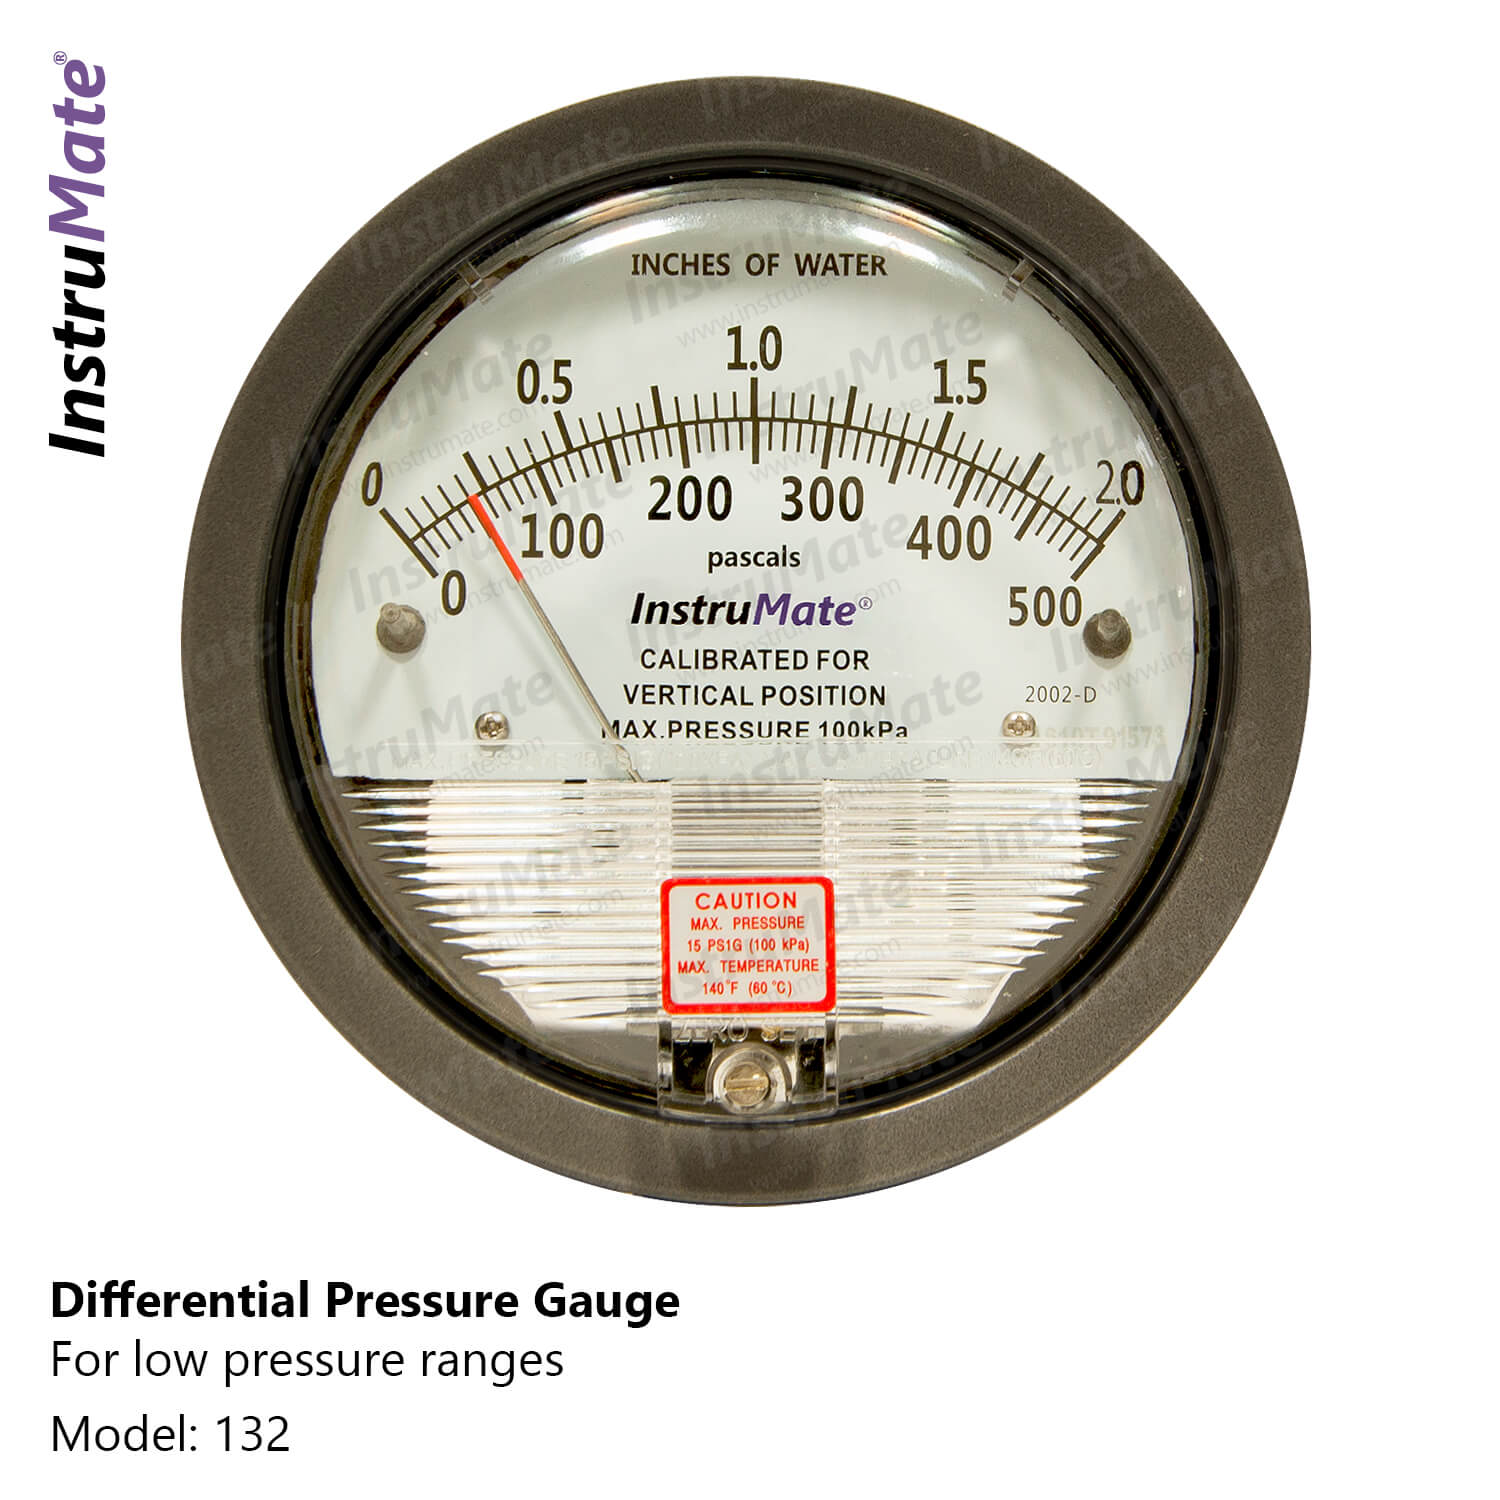 Low pressure differential pressure gauge - 132 - instrumate